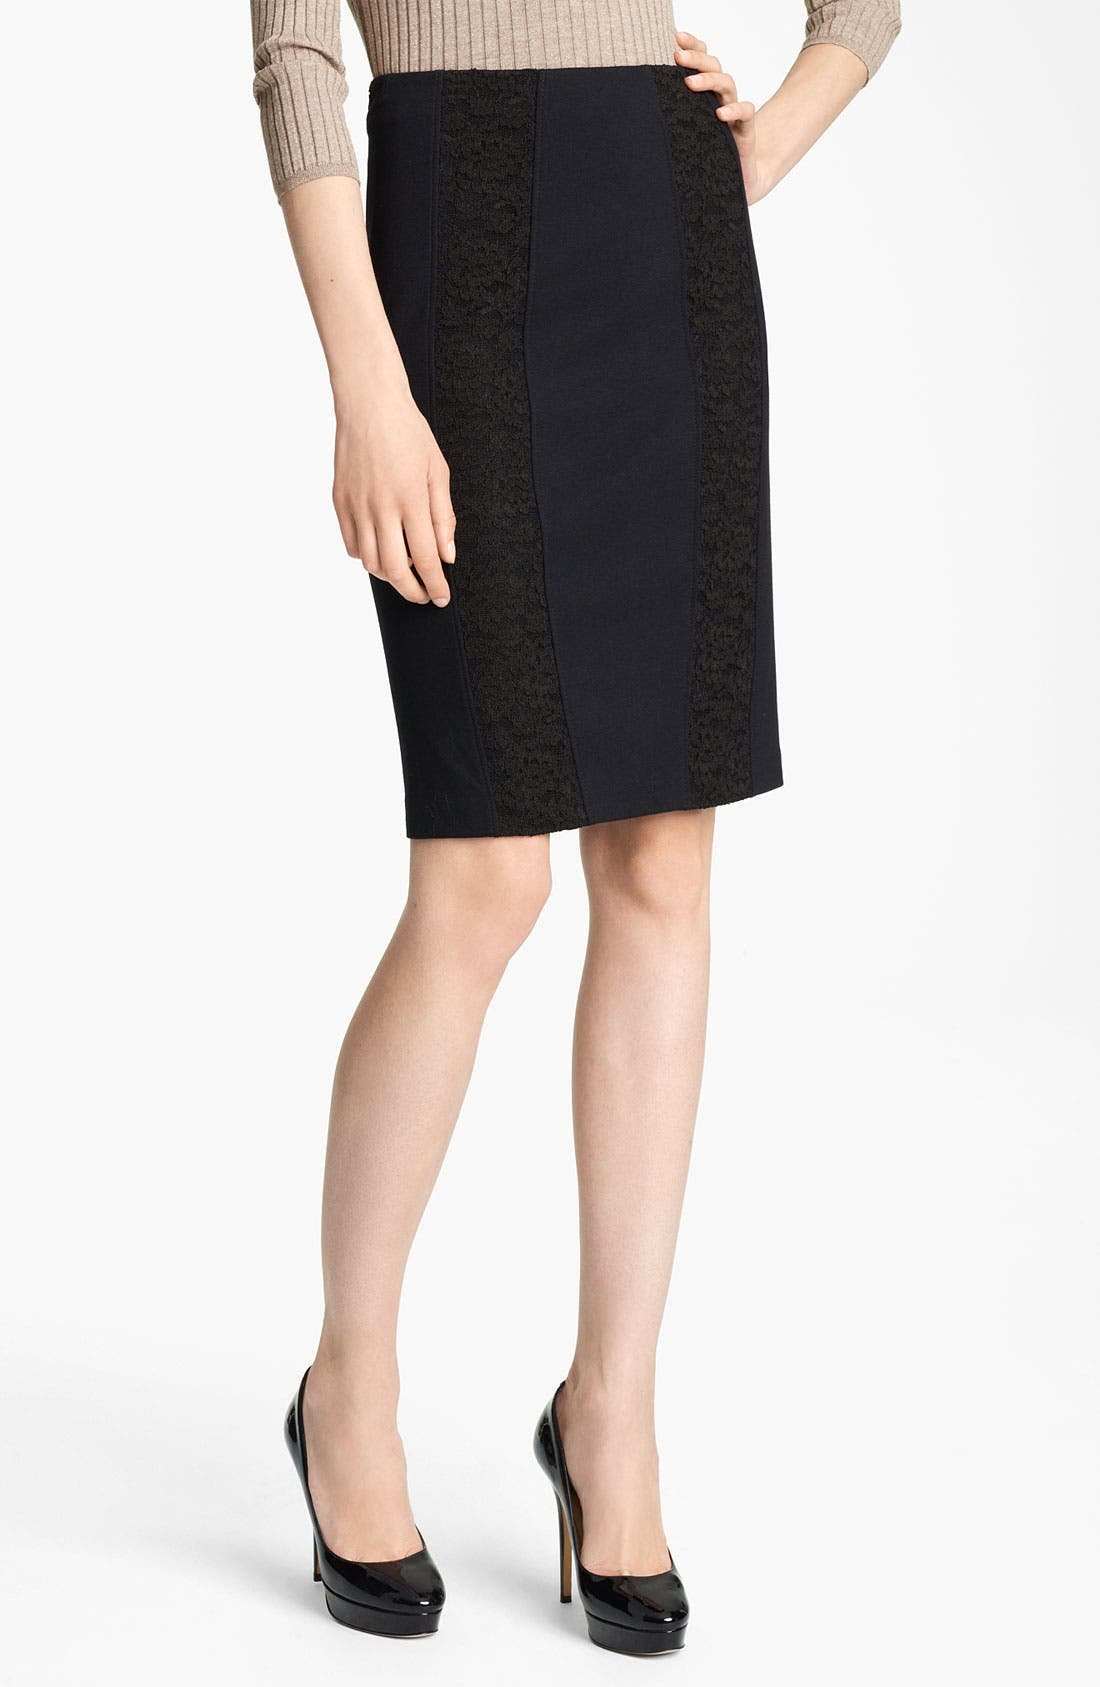 Alternate Image 1 Selected - Blumarine Lace Inset Pencil Skirt